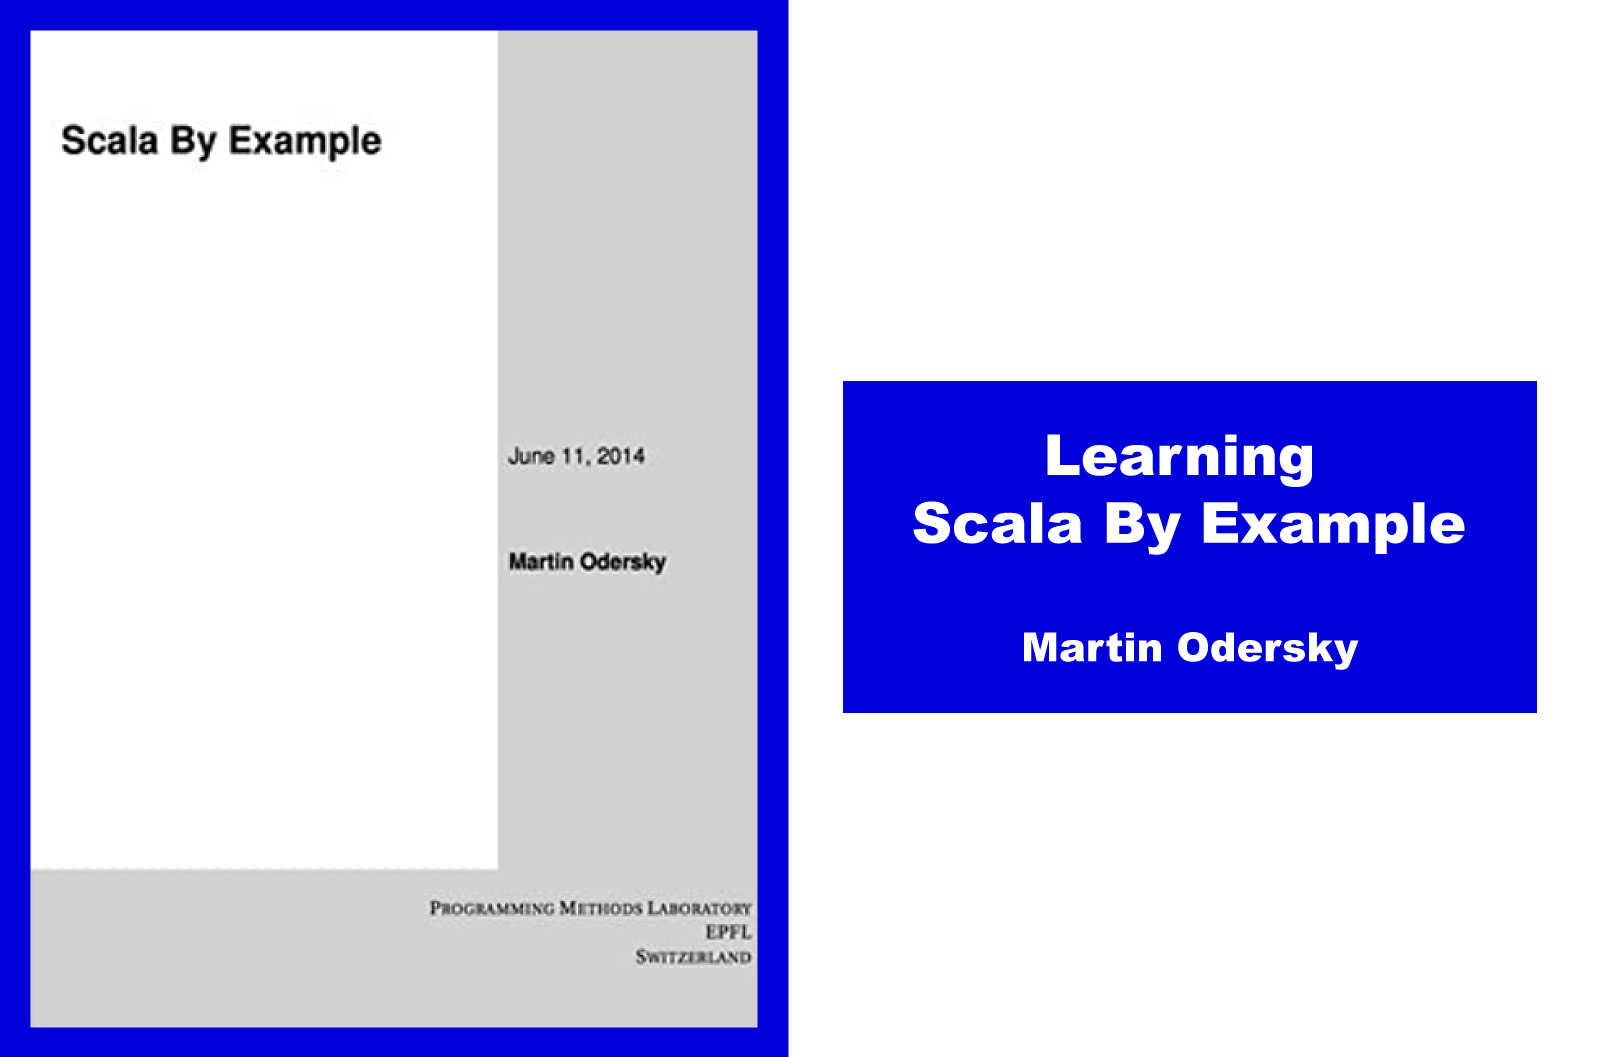 Learning Scala by Example